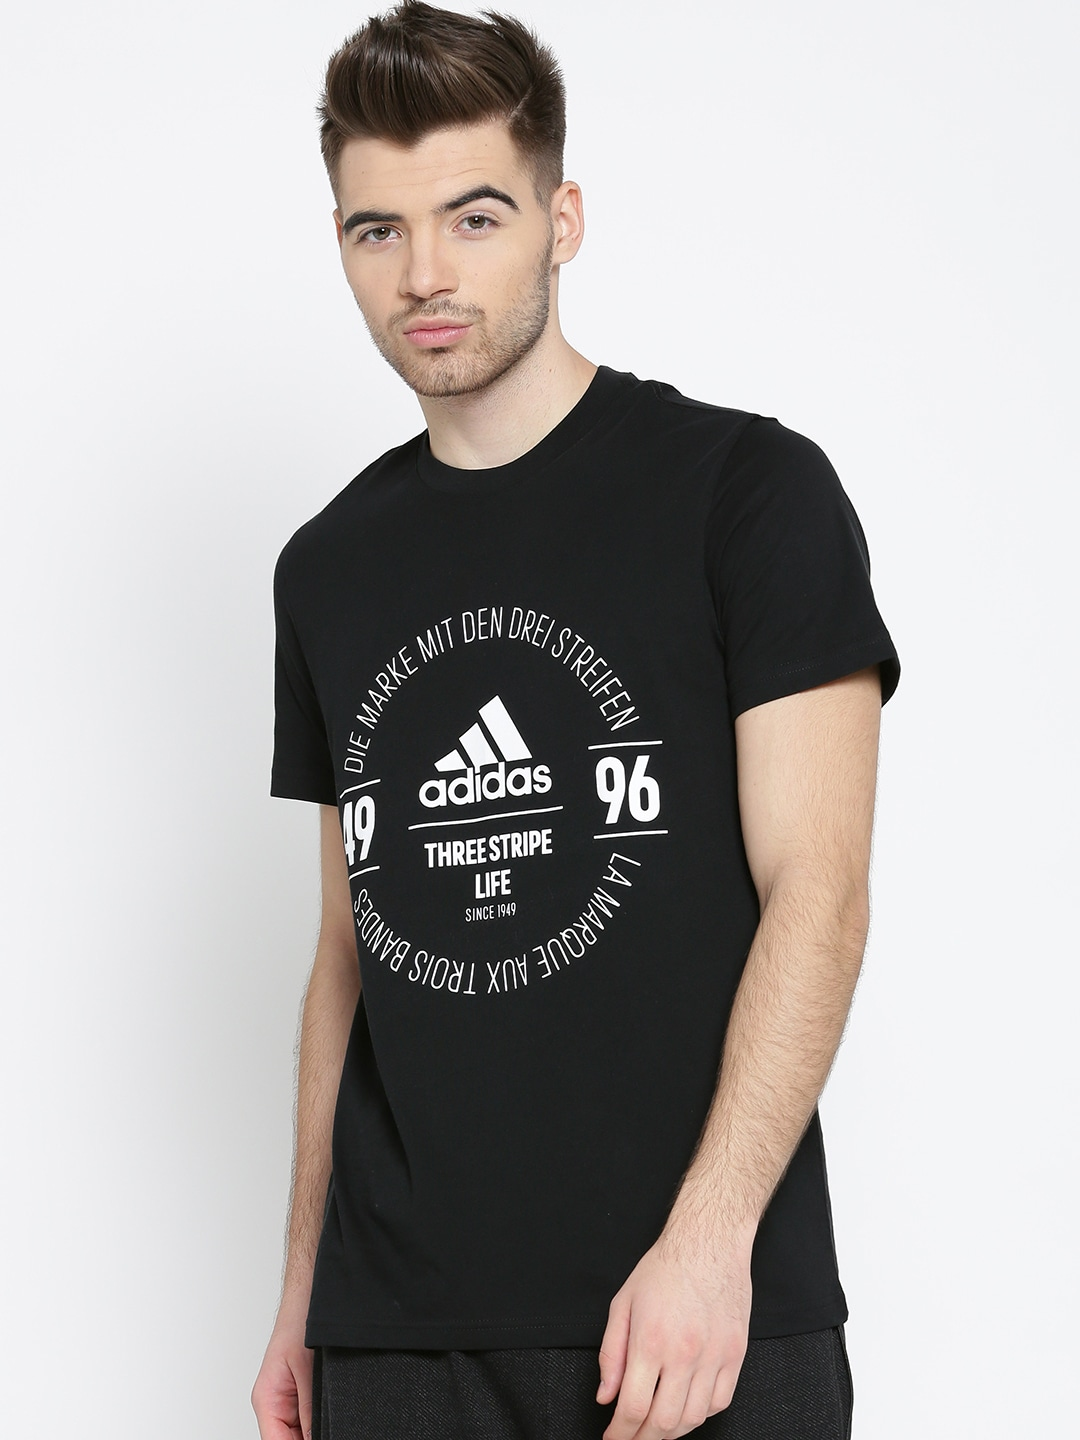 Design your own t shirt india cash on delivery - Adidas Men Black Logo Printed Round Neck T Shirt